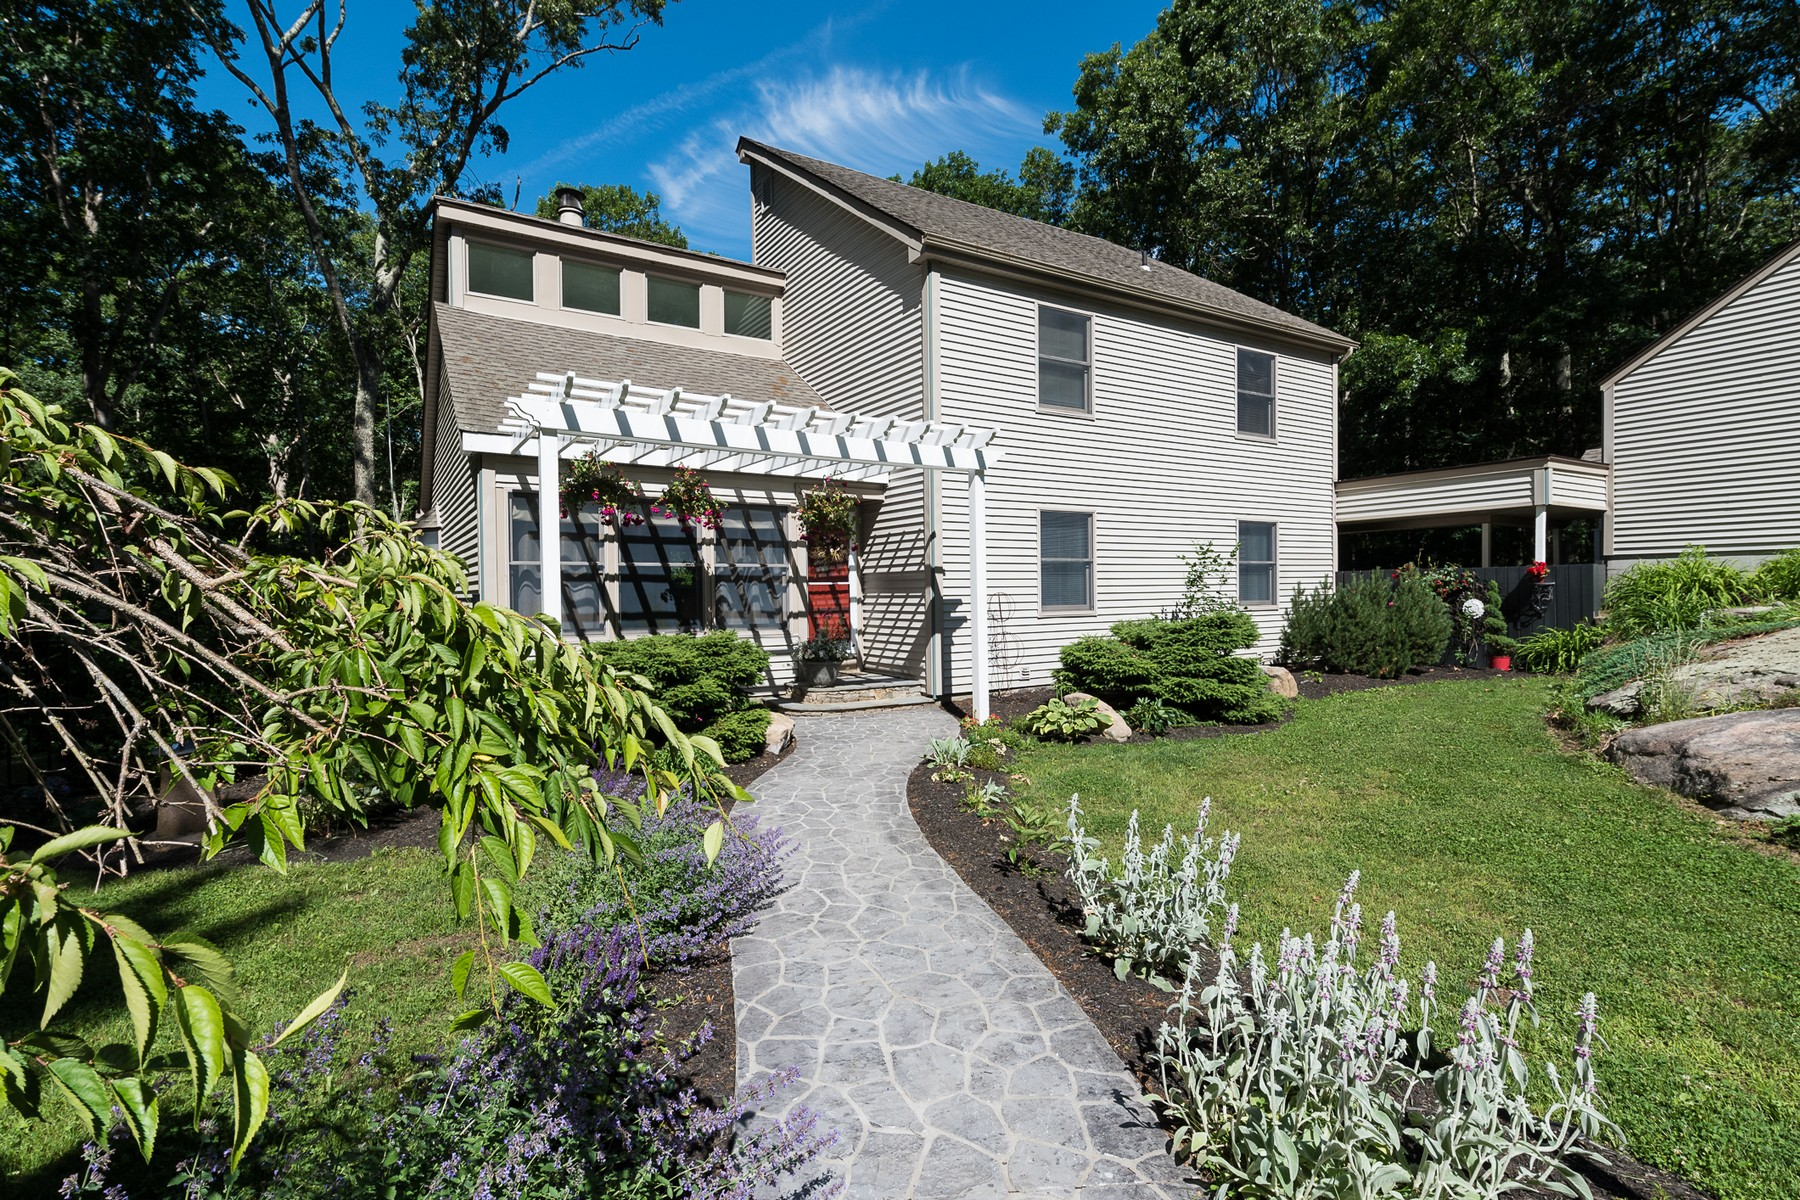 Single Family Home for Sale at Private Setting 3 Mansewood Road Old Lyme, Connecticut 06371 United States